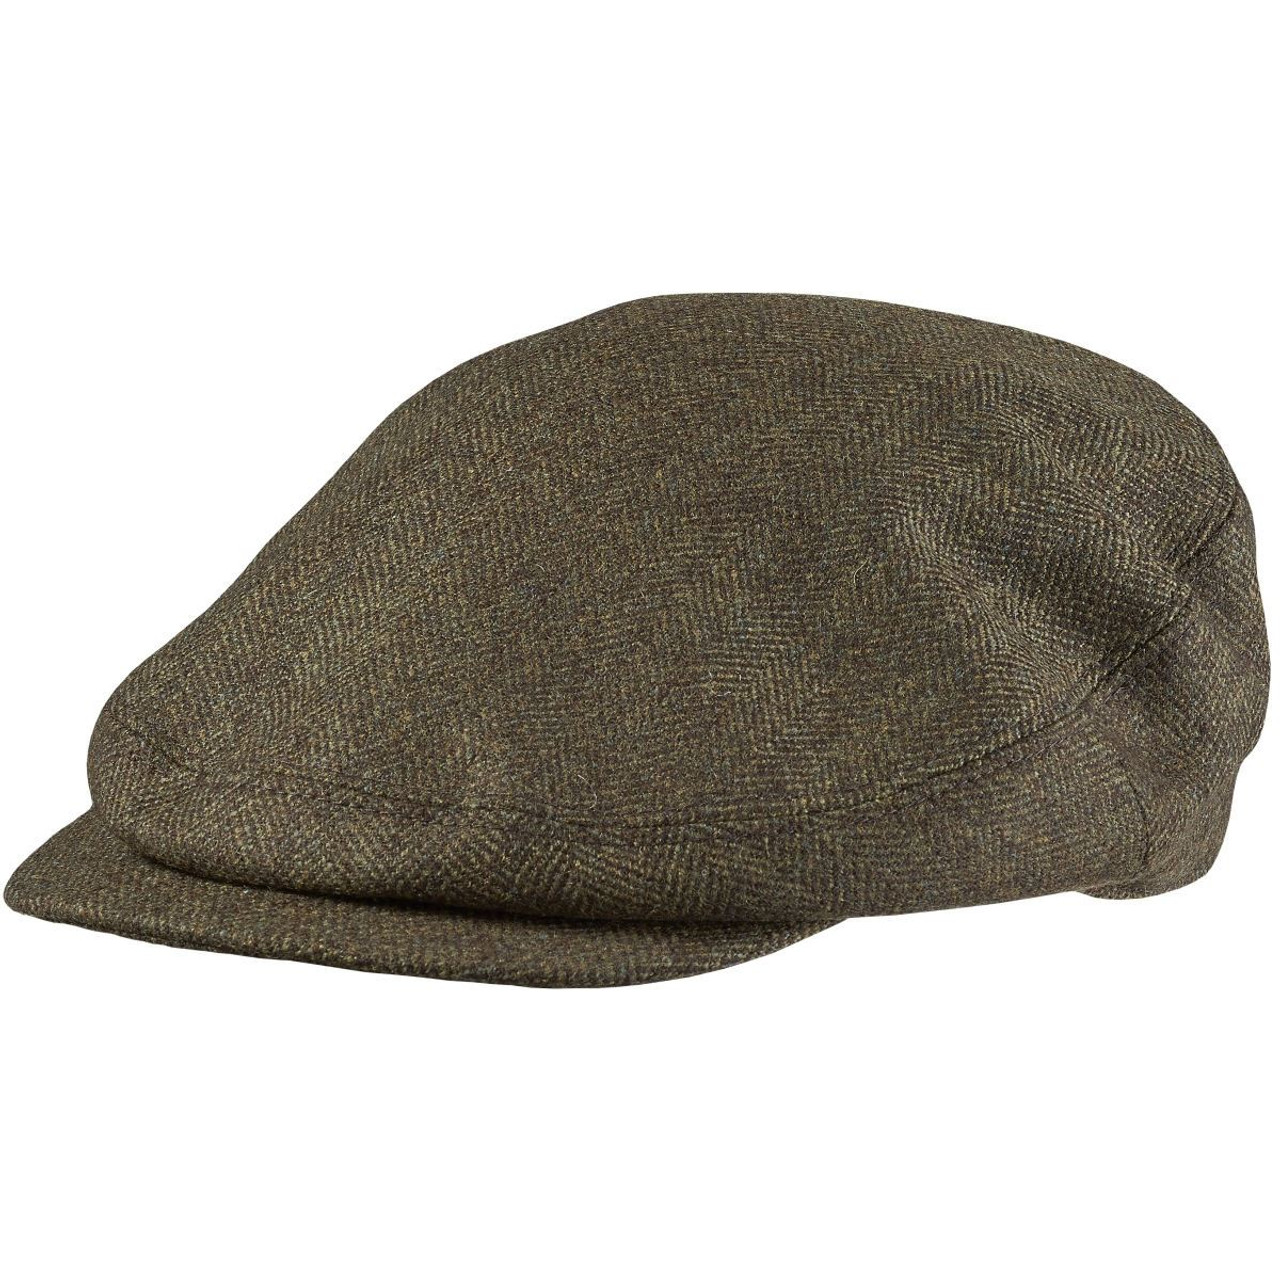 Musto Technical Tweed Cap